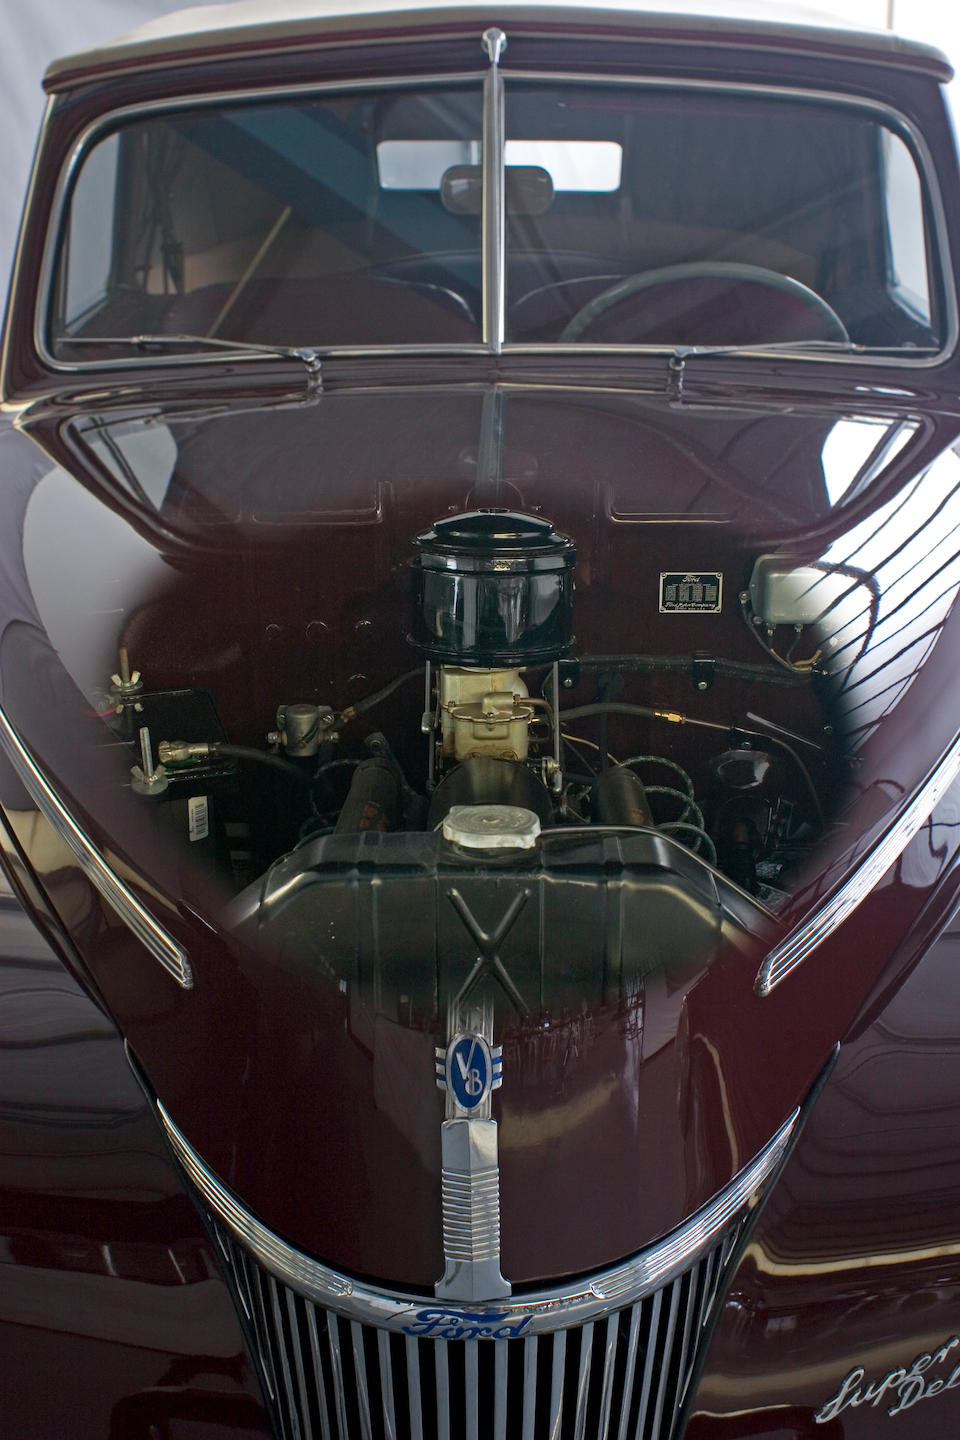 The Dearborn Award-Winning,1941 Ford 11A Super Deluxe Convertible Coupe  Chassis no. 1866901035